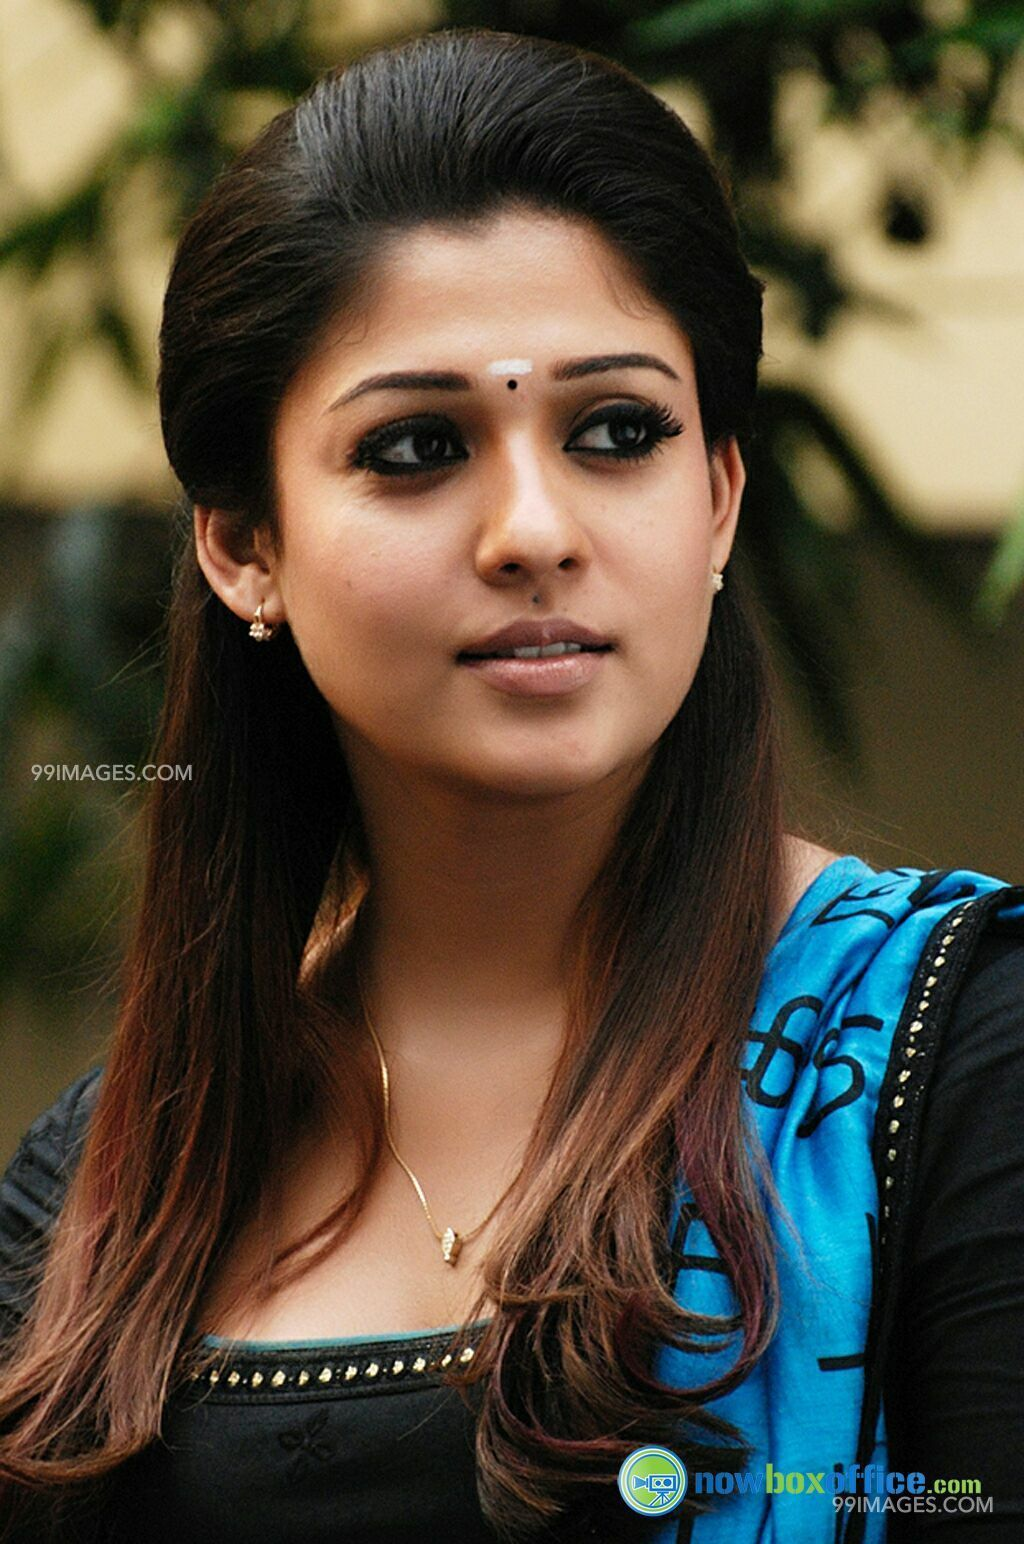 Nayanthara Hot HD Photos, Wallpapers, WhatsApp DP (1080p) (800) - Nayanthara